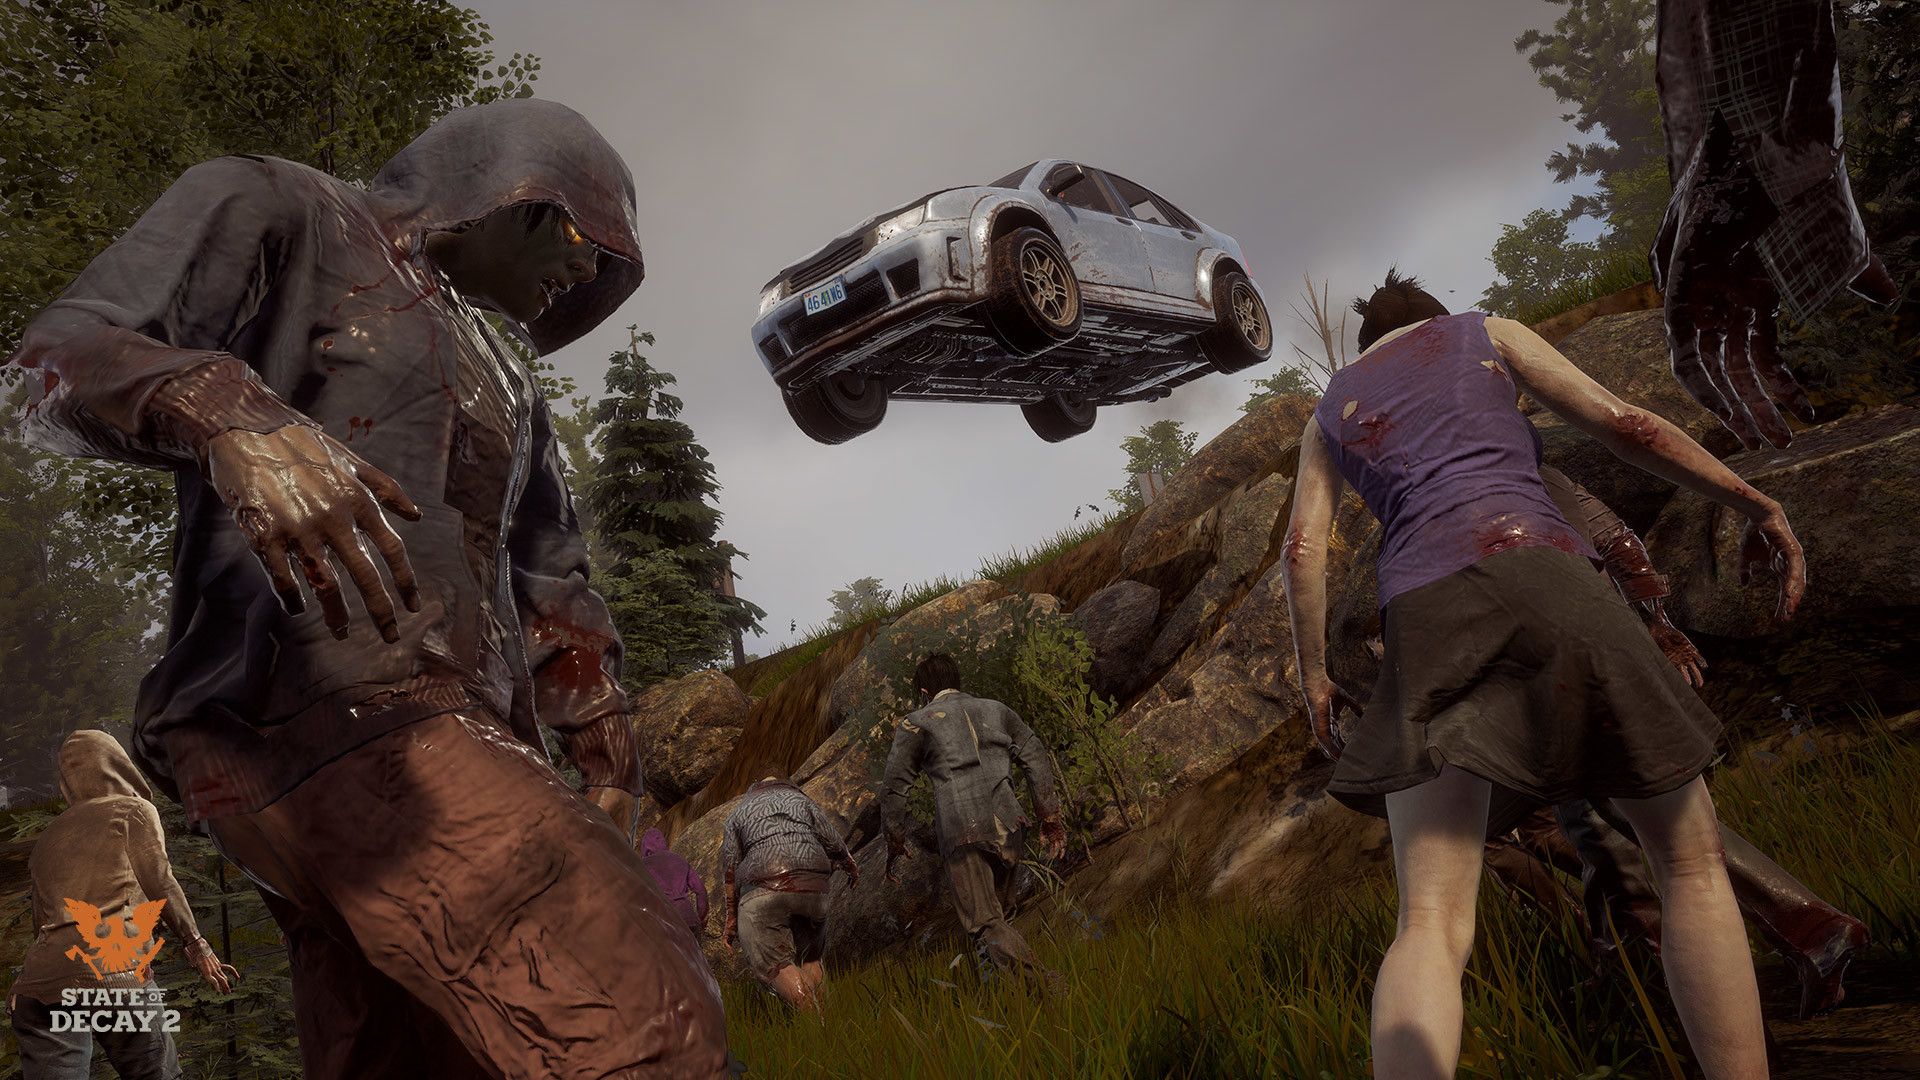 State of Decay 2 gets a 20GB update bringing improvements to all